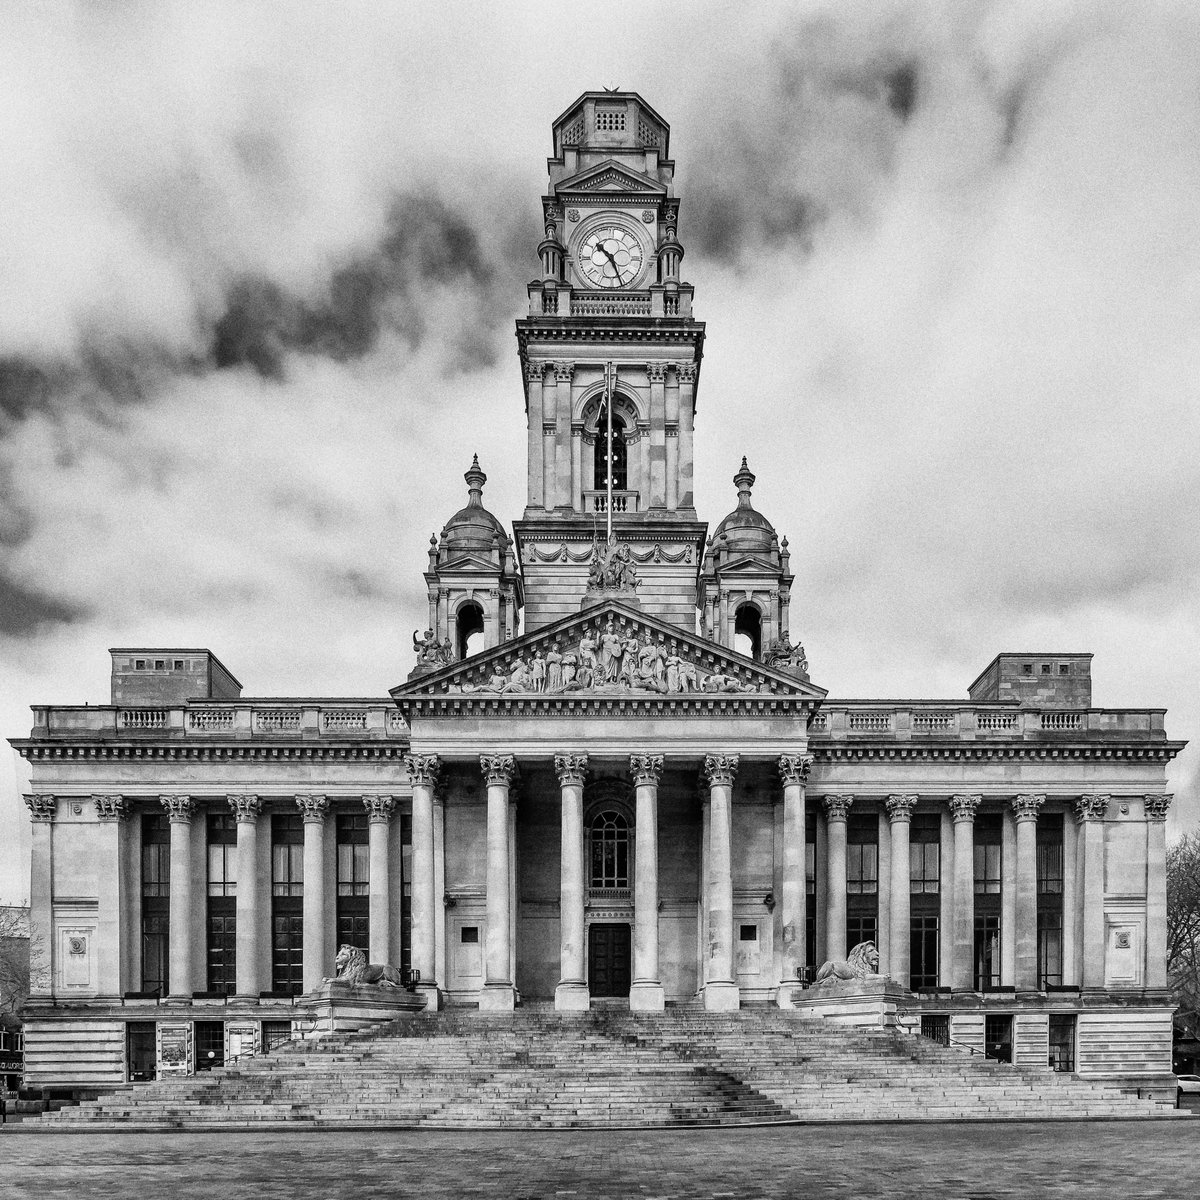 #portsmouthguildhall #Portsmouth #UK #bw #pb #architecturalphotography #interiordesign #fineartphotography #limitededition #sonyalpha #sonyworldclub #sonyimages #zeisscameralenses #portsmouthuk #bnwsouls #bnw_greatshots #bnwpic.twitter.com/rANU1Yd1PR